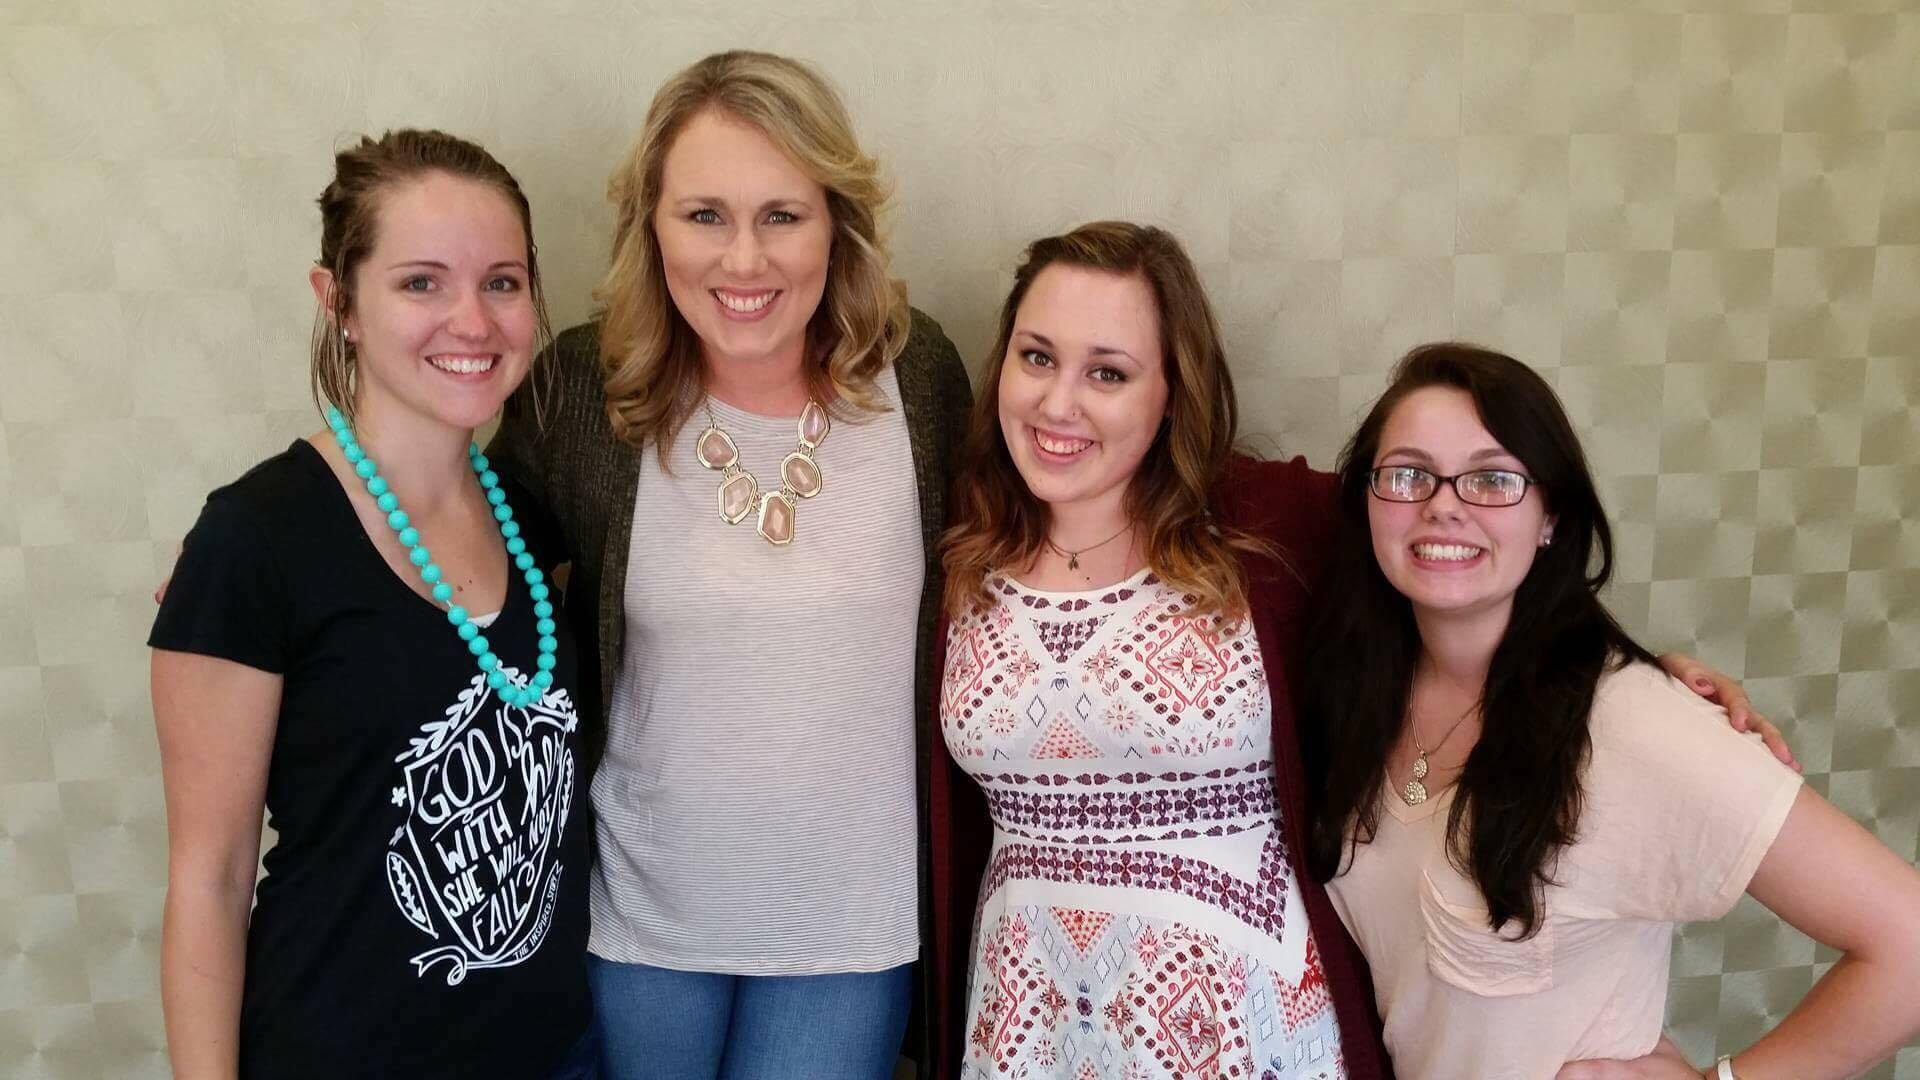 Myself, Laura & Rachel, Alex | The MOST AMAZING ladies I have ever met! I am so excited to watch our growth together!